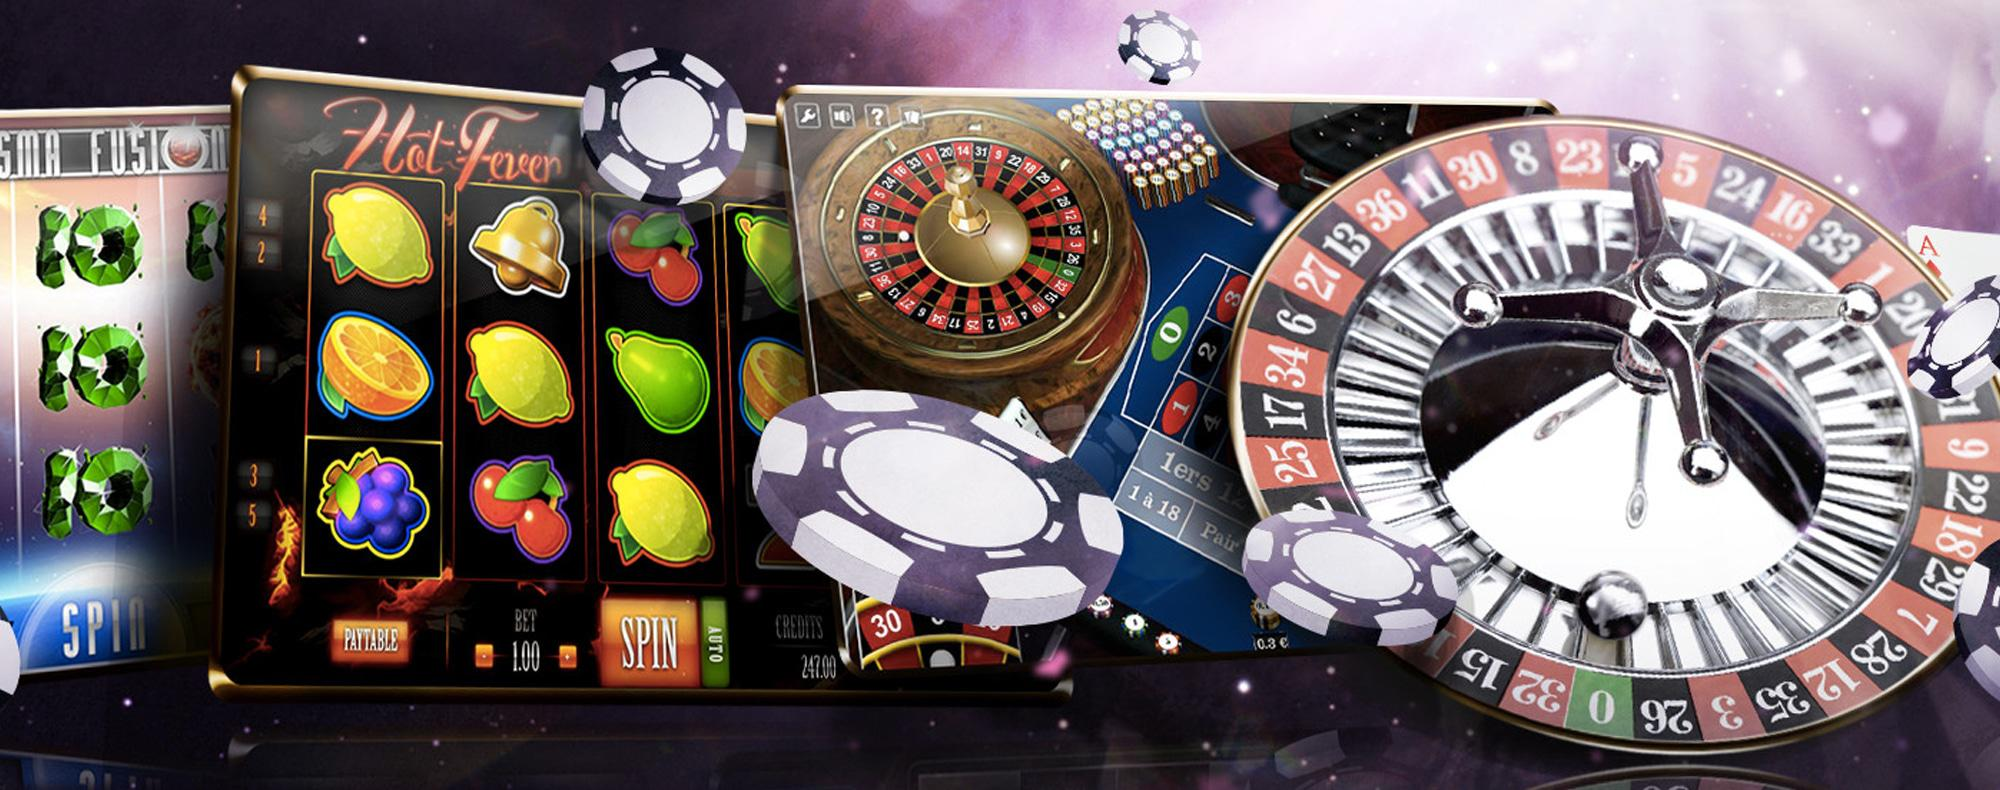 No Deposit Casino Bonuses [185+] For April 2020 🤑